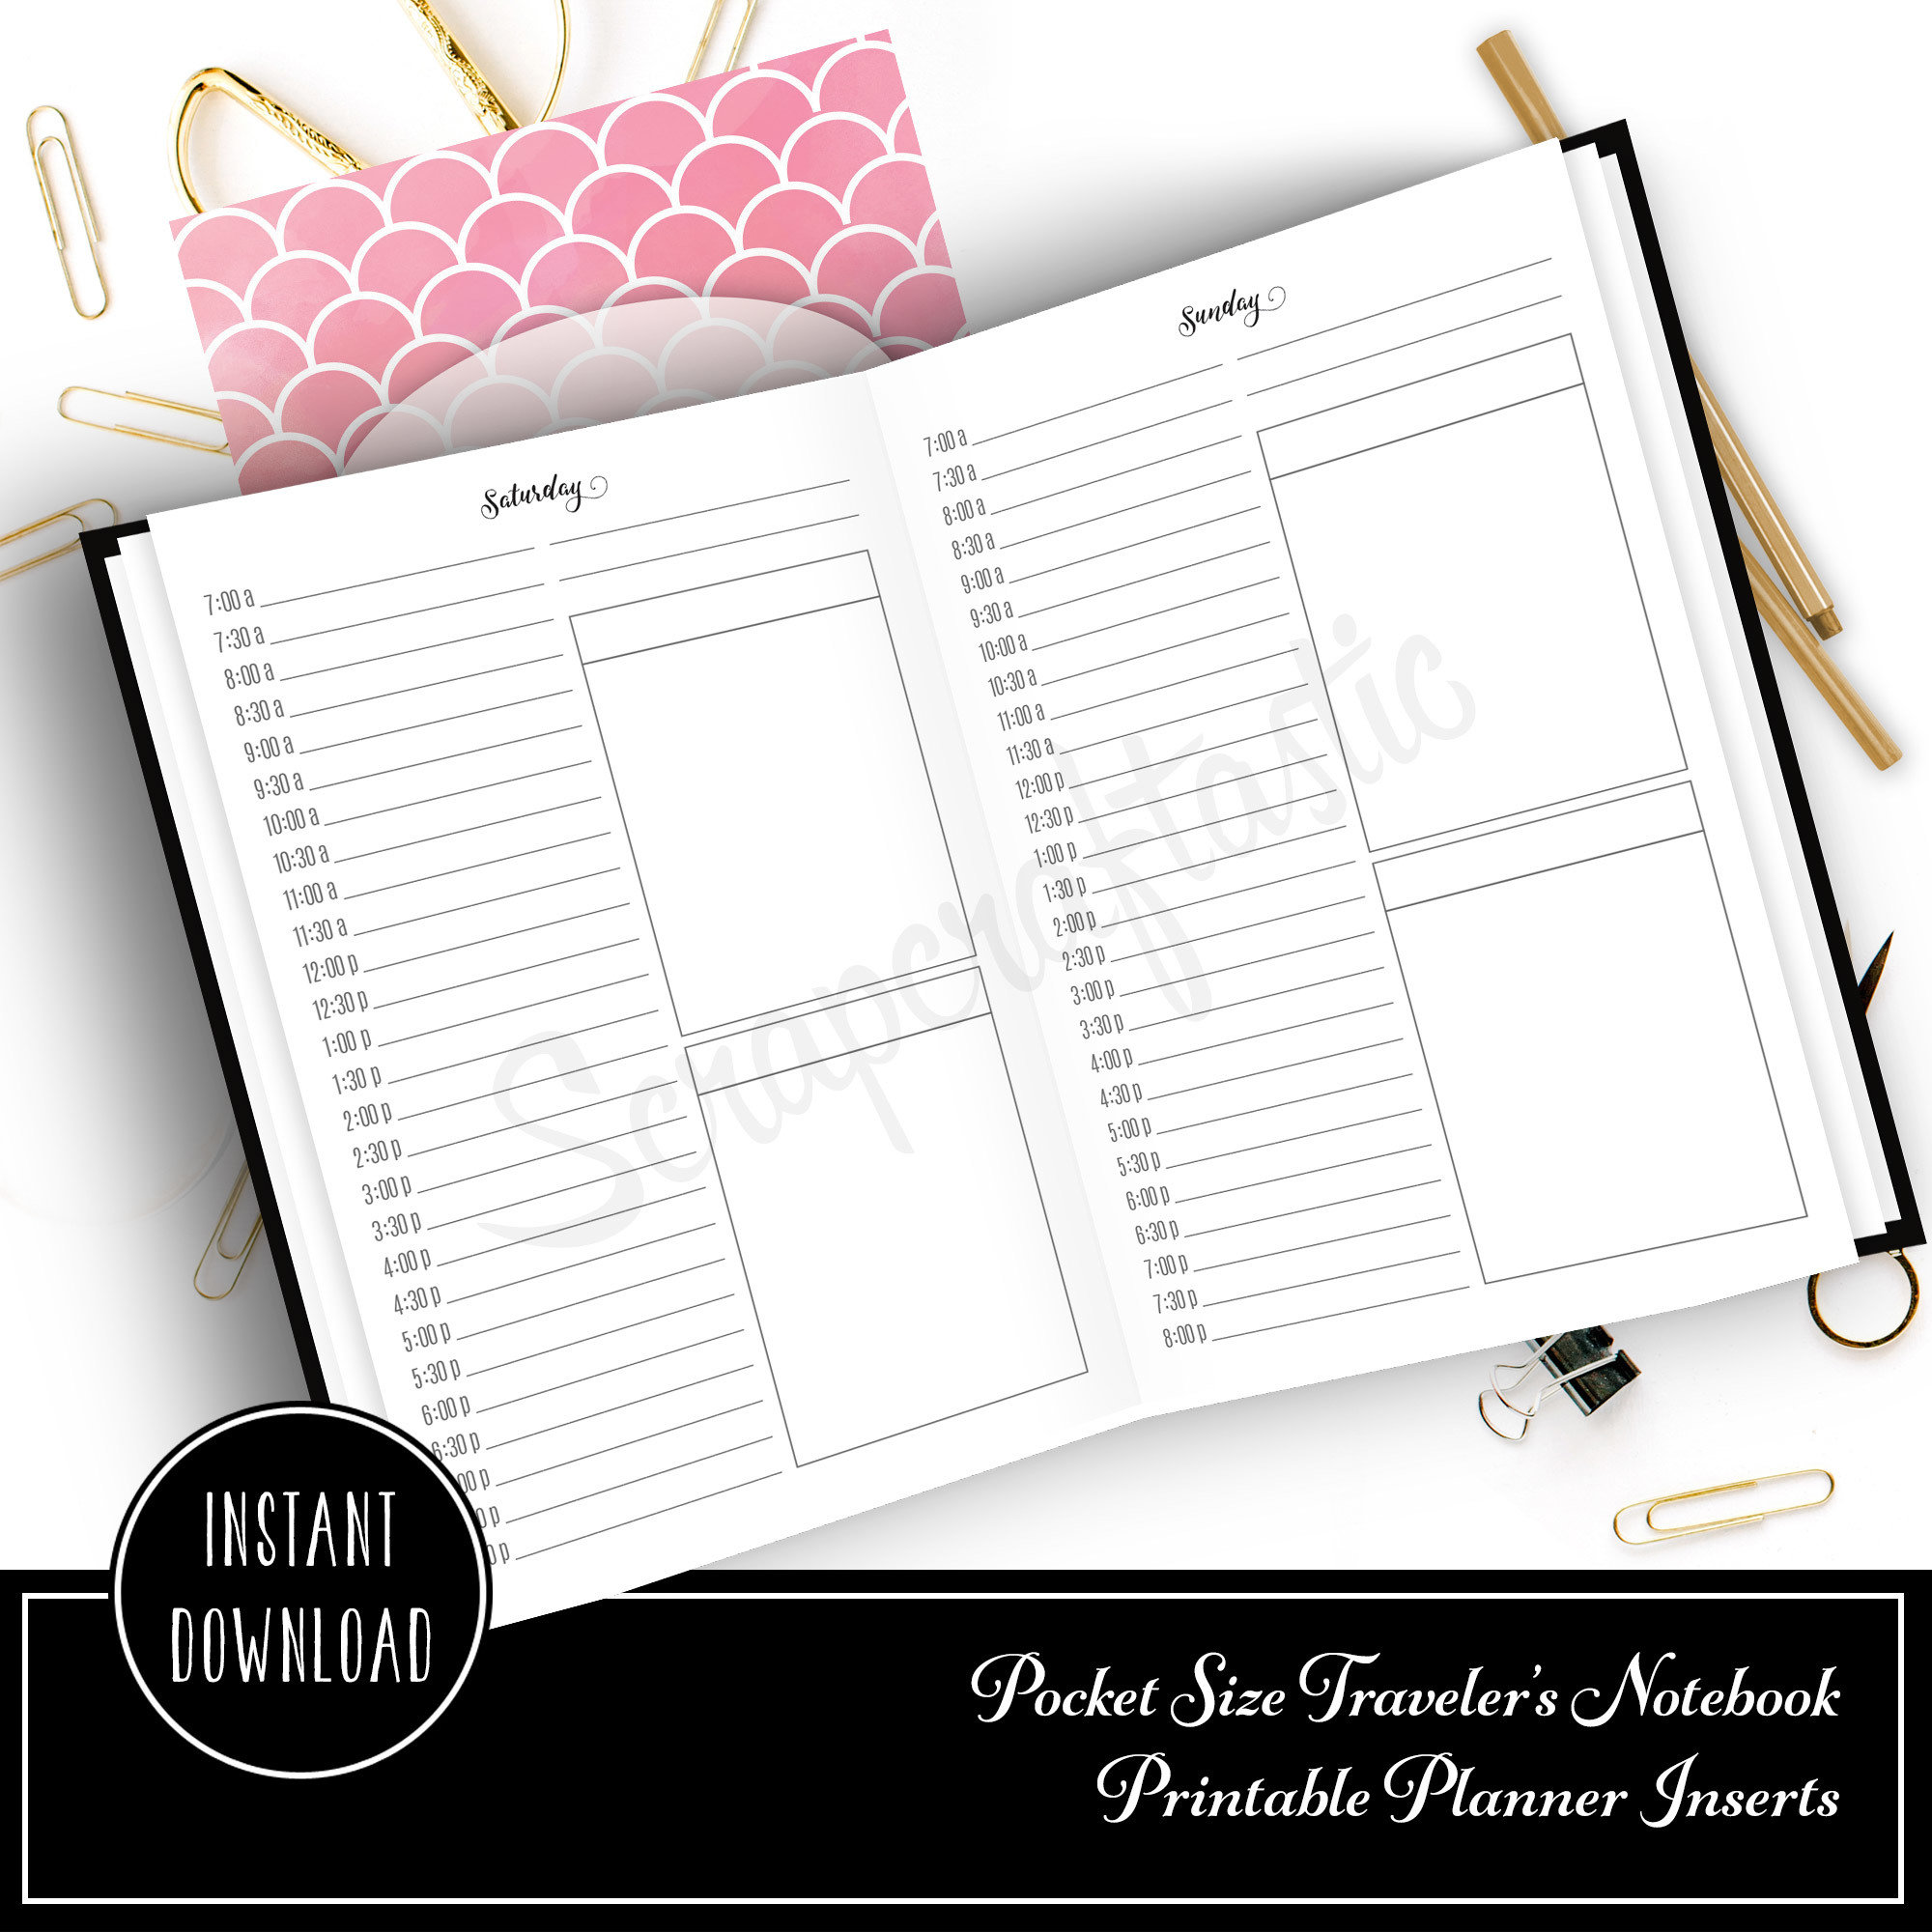 Full Month Notebook: Daily Pocket Size with MO2P, WO1P Horizontal and DO1P Daily Schedule Pages Printable 10003